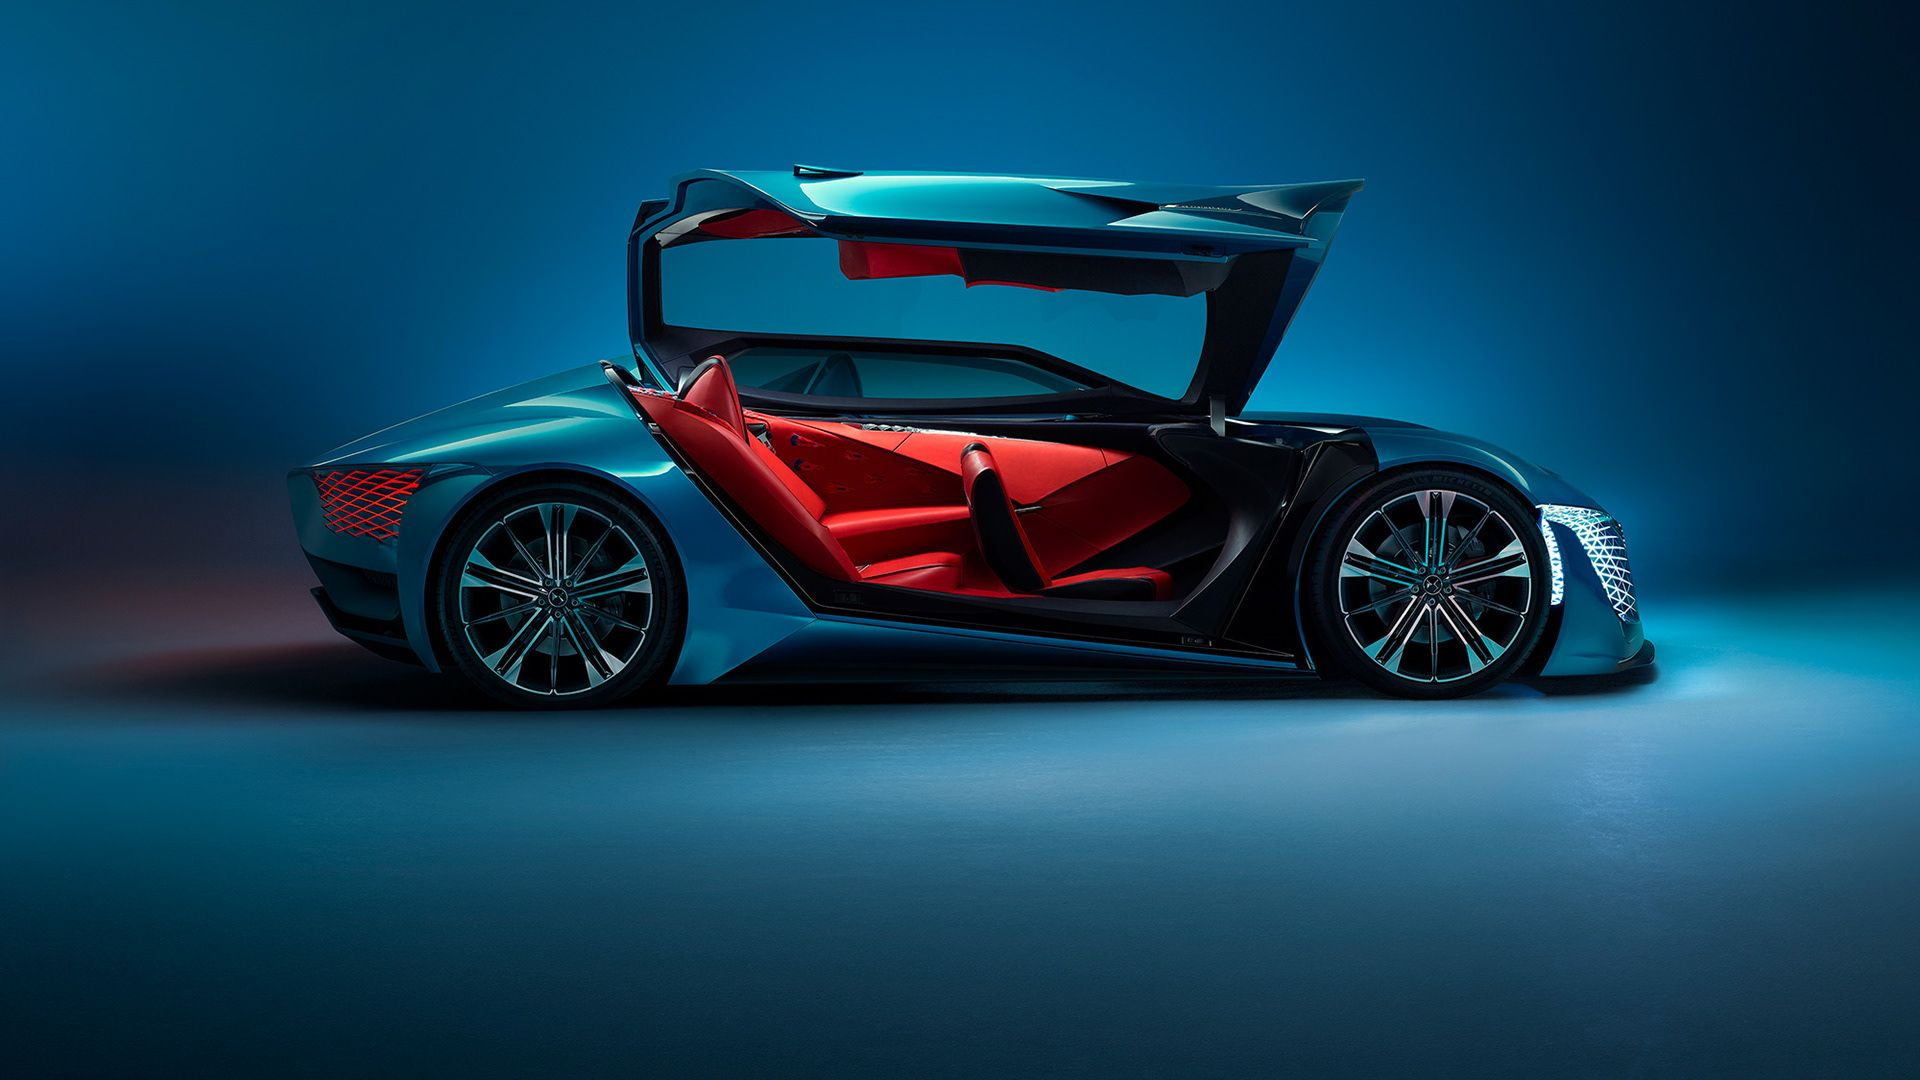 The Ds X Concept Is A Futuristic Sports Car Split In Two Parts And Two Posts Concept Cars Ds Automobiles Super Cars